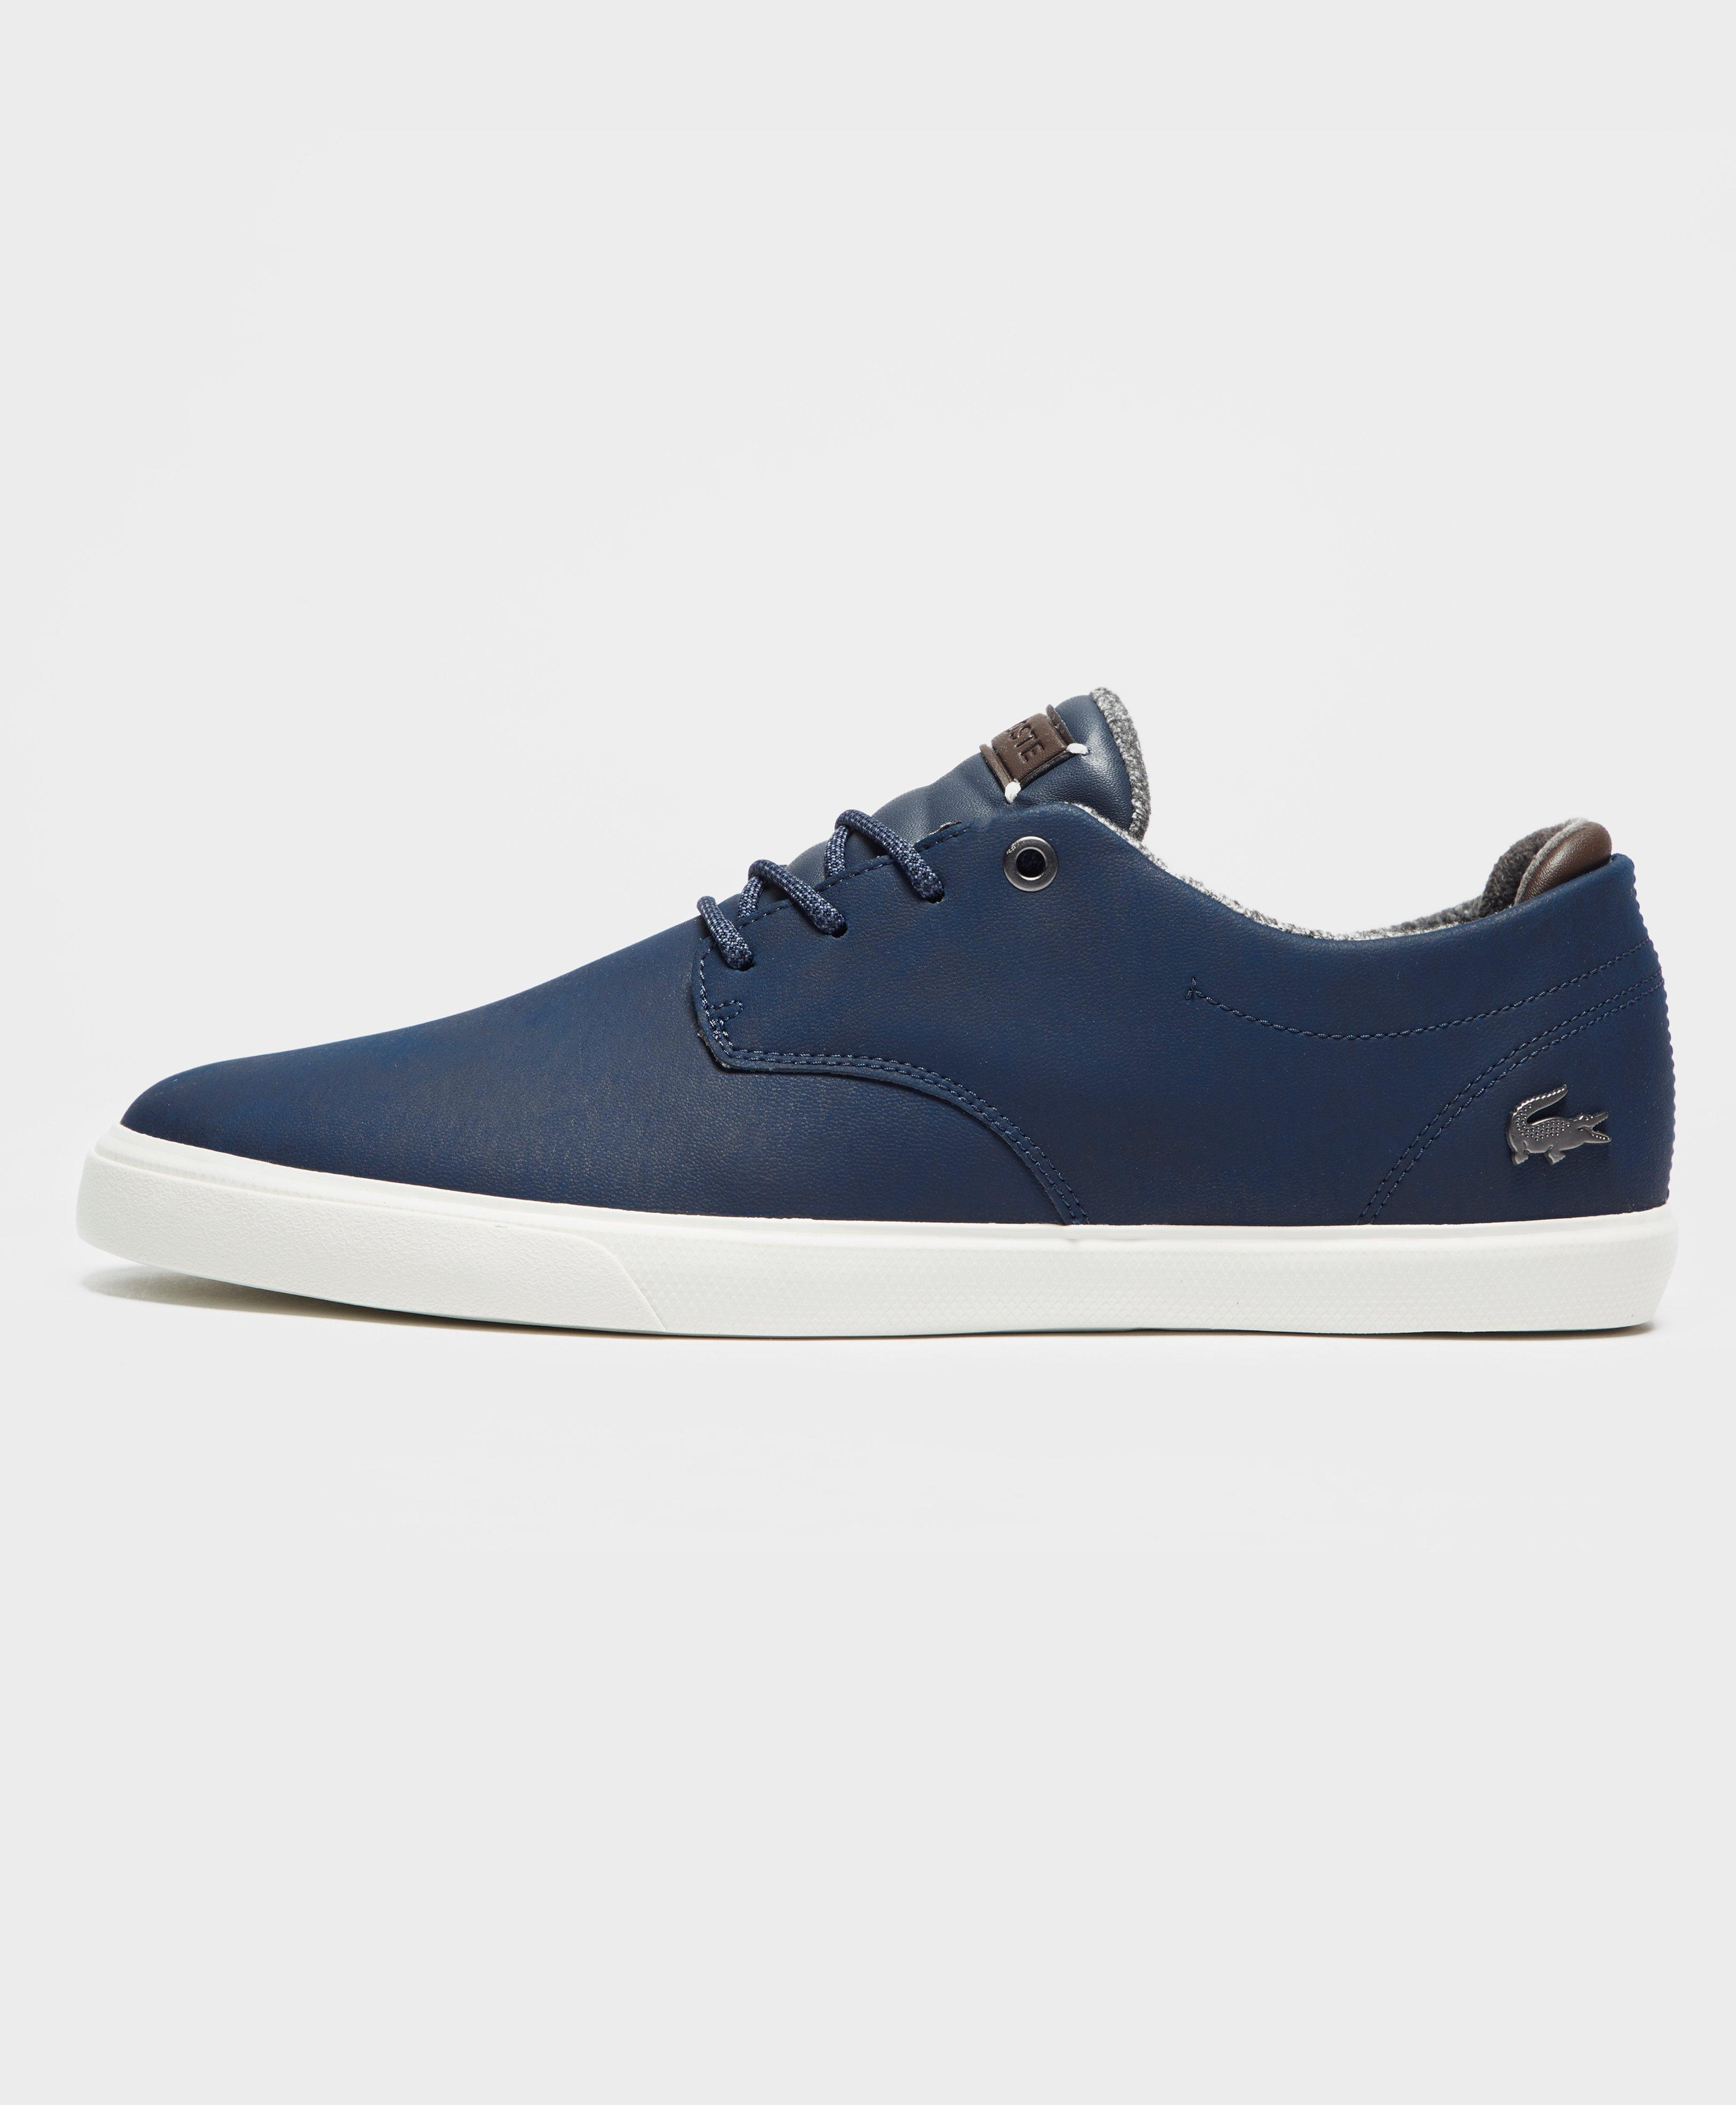 8a7592224a709a Lacoste Esparre in Blue for Men - Lyst